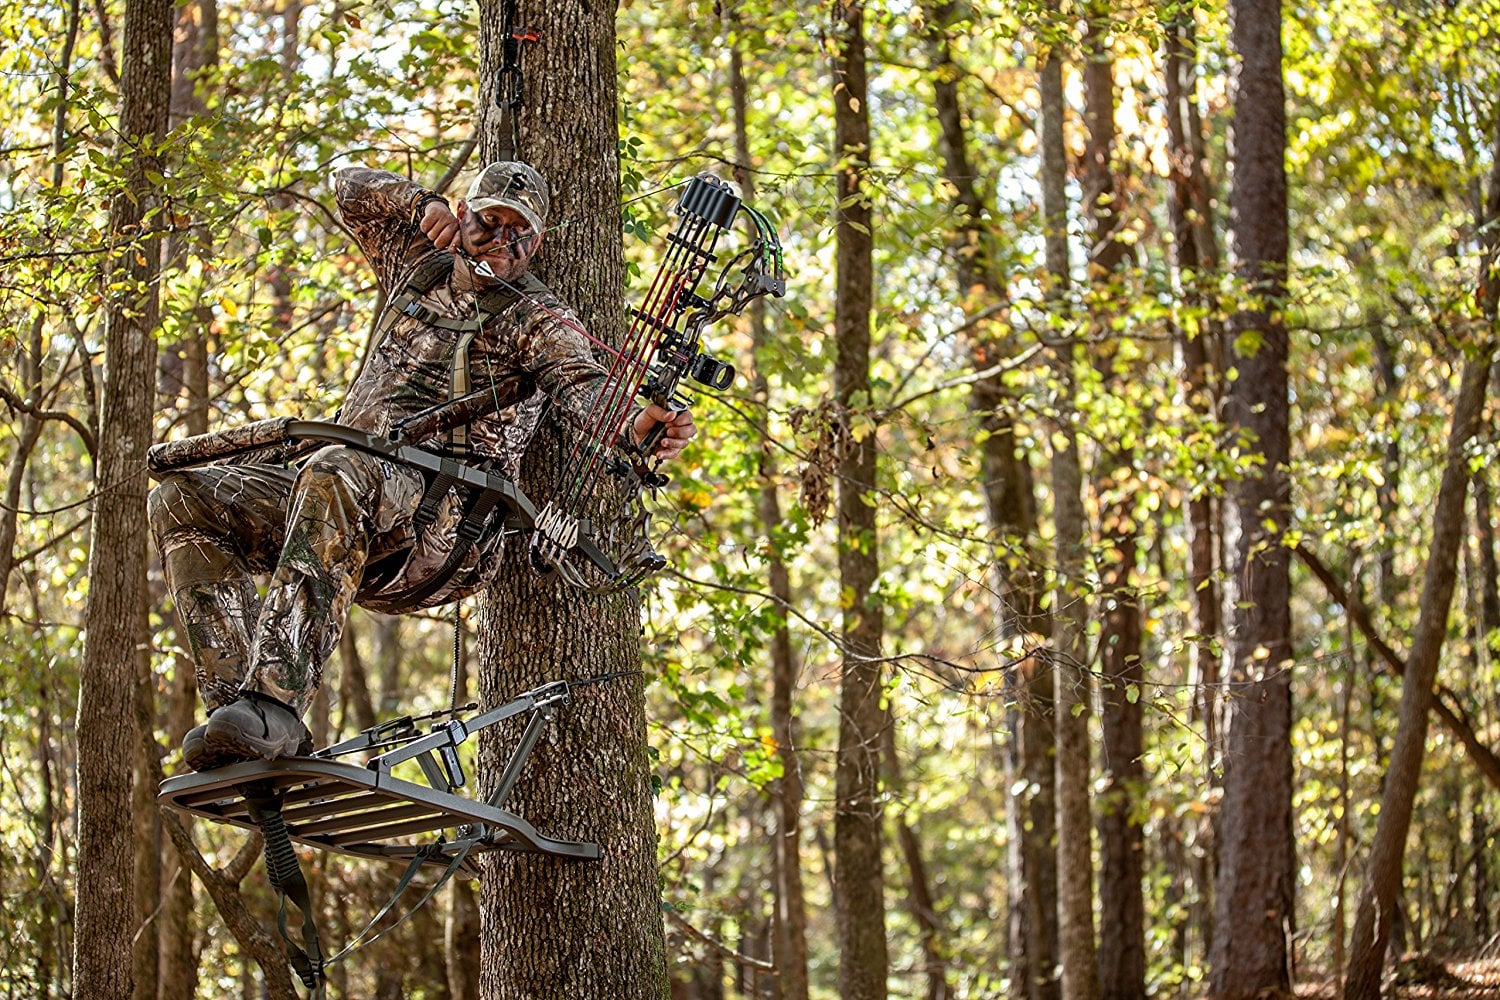 Big Game Recalls Tree Stands Due to Fall | CPSC.gov